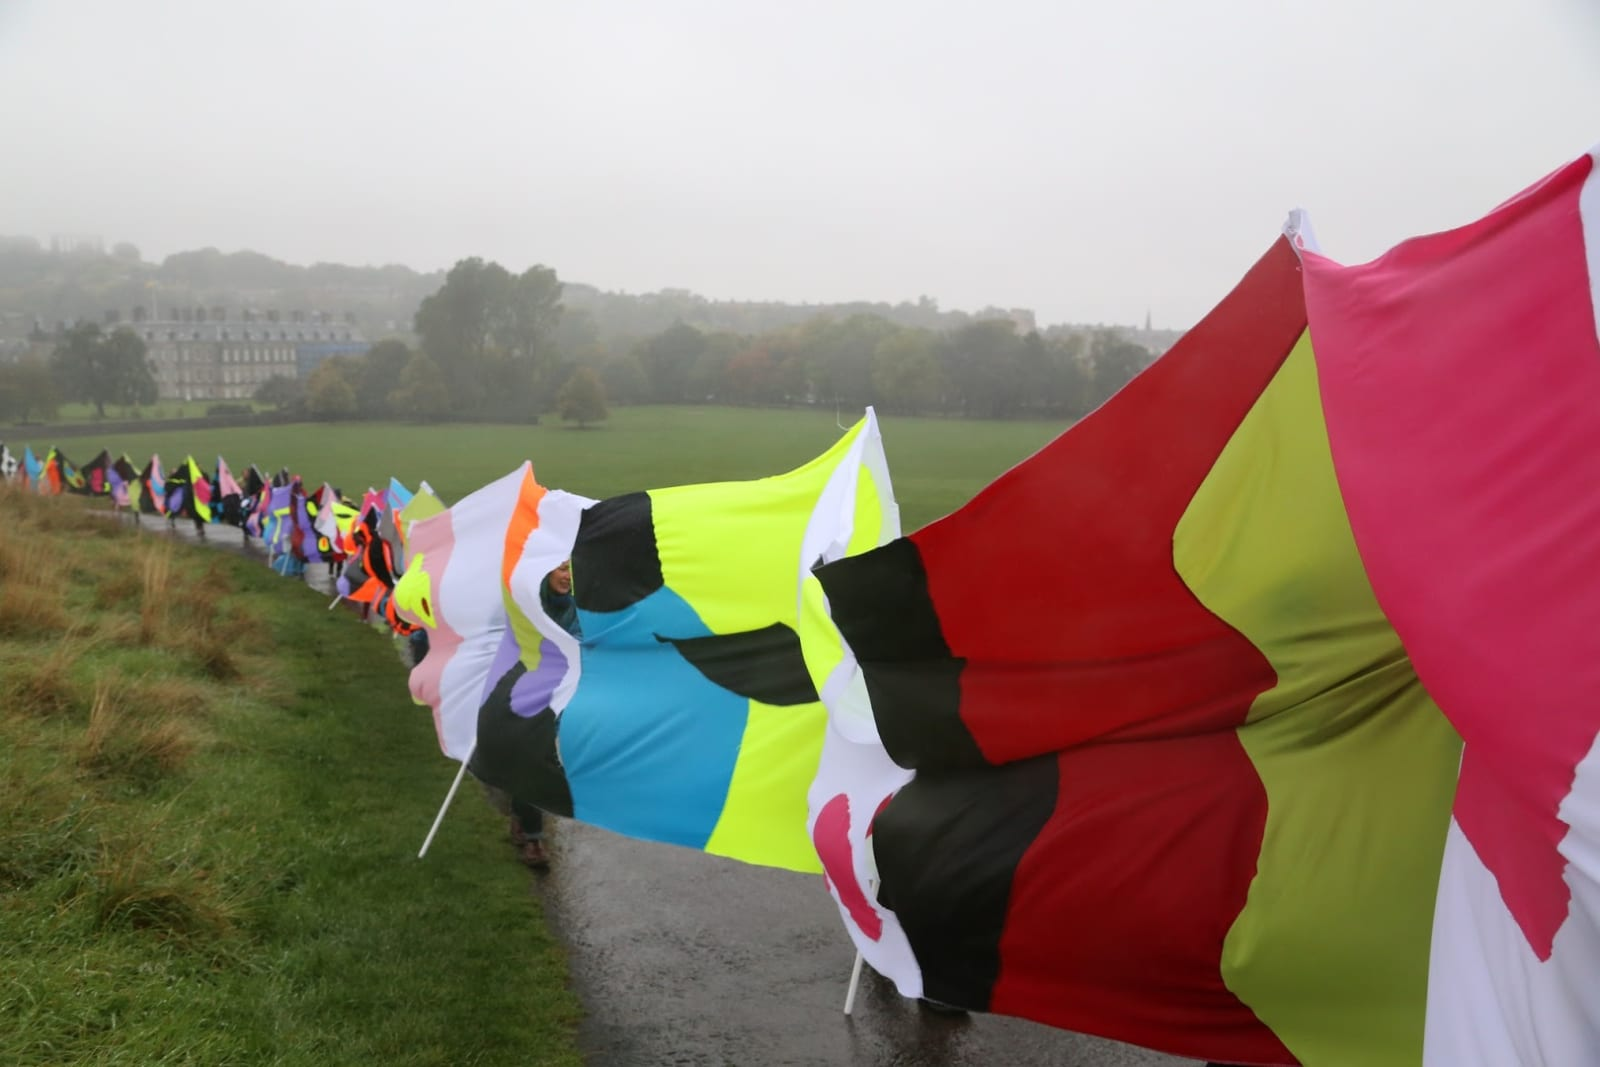 Jacob Dahlgren No Conflict no Irony (I Love the Whole World), 2013. The making of a 100 meter long banner and the walk to Salisbury Crags on 17 October 2013, Sweden